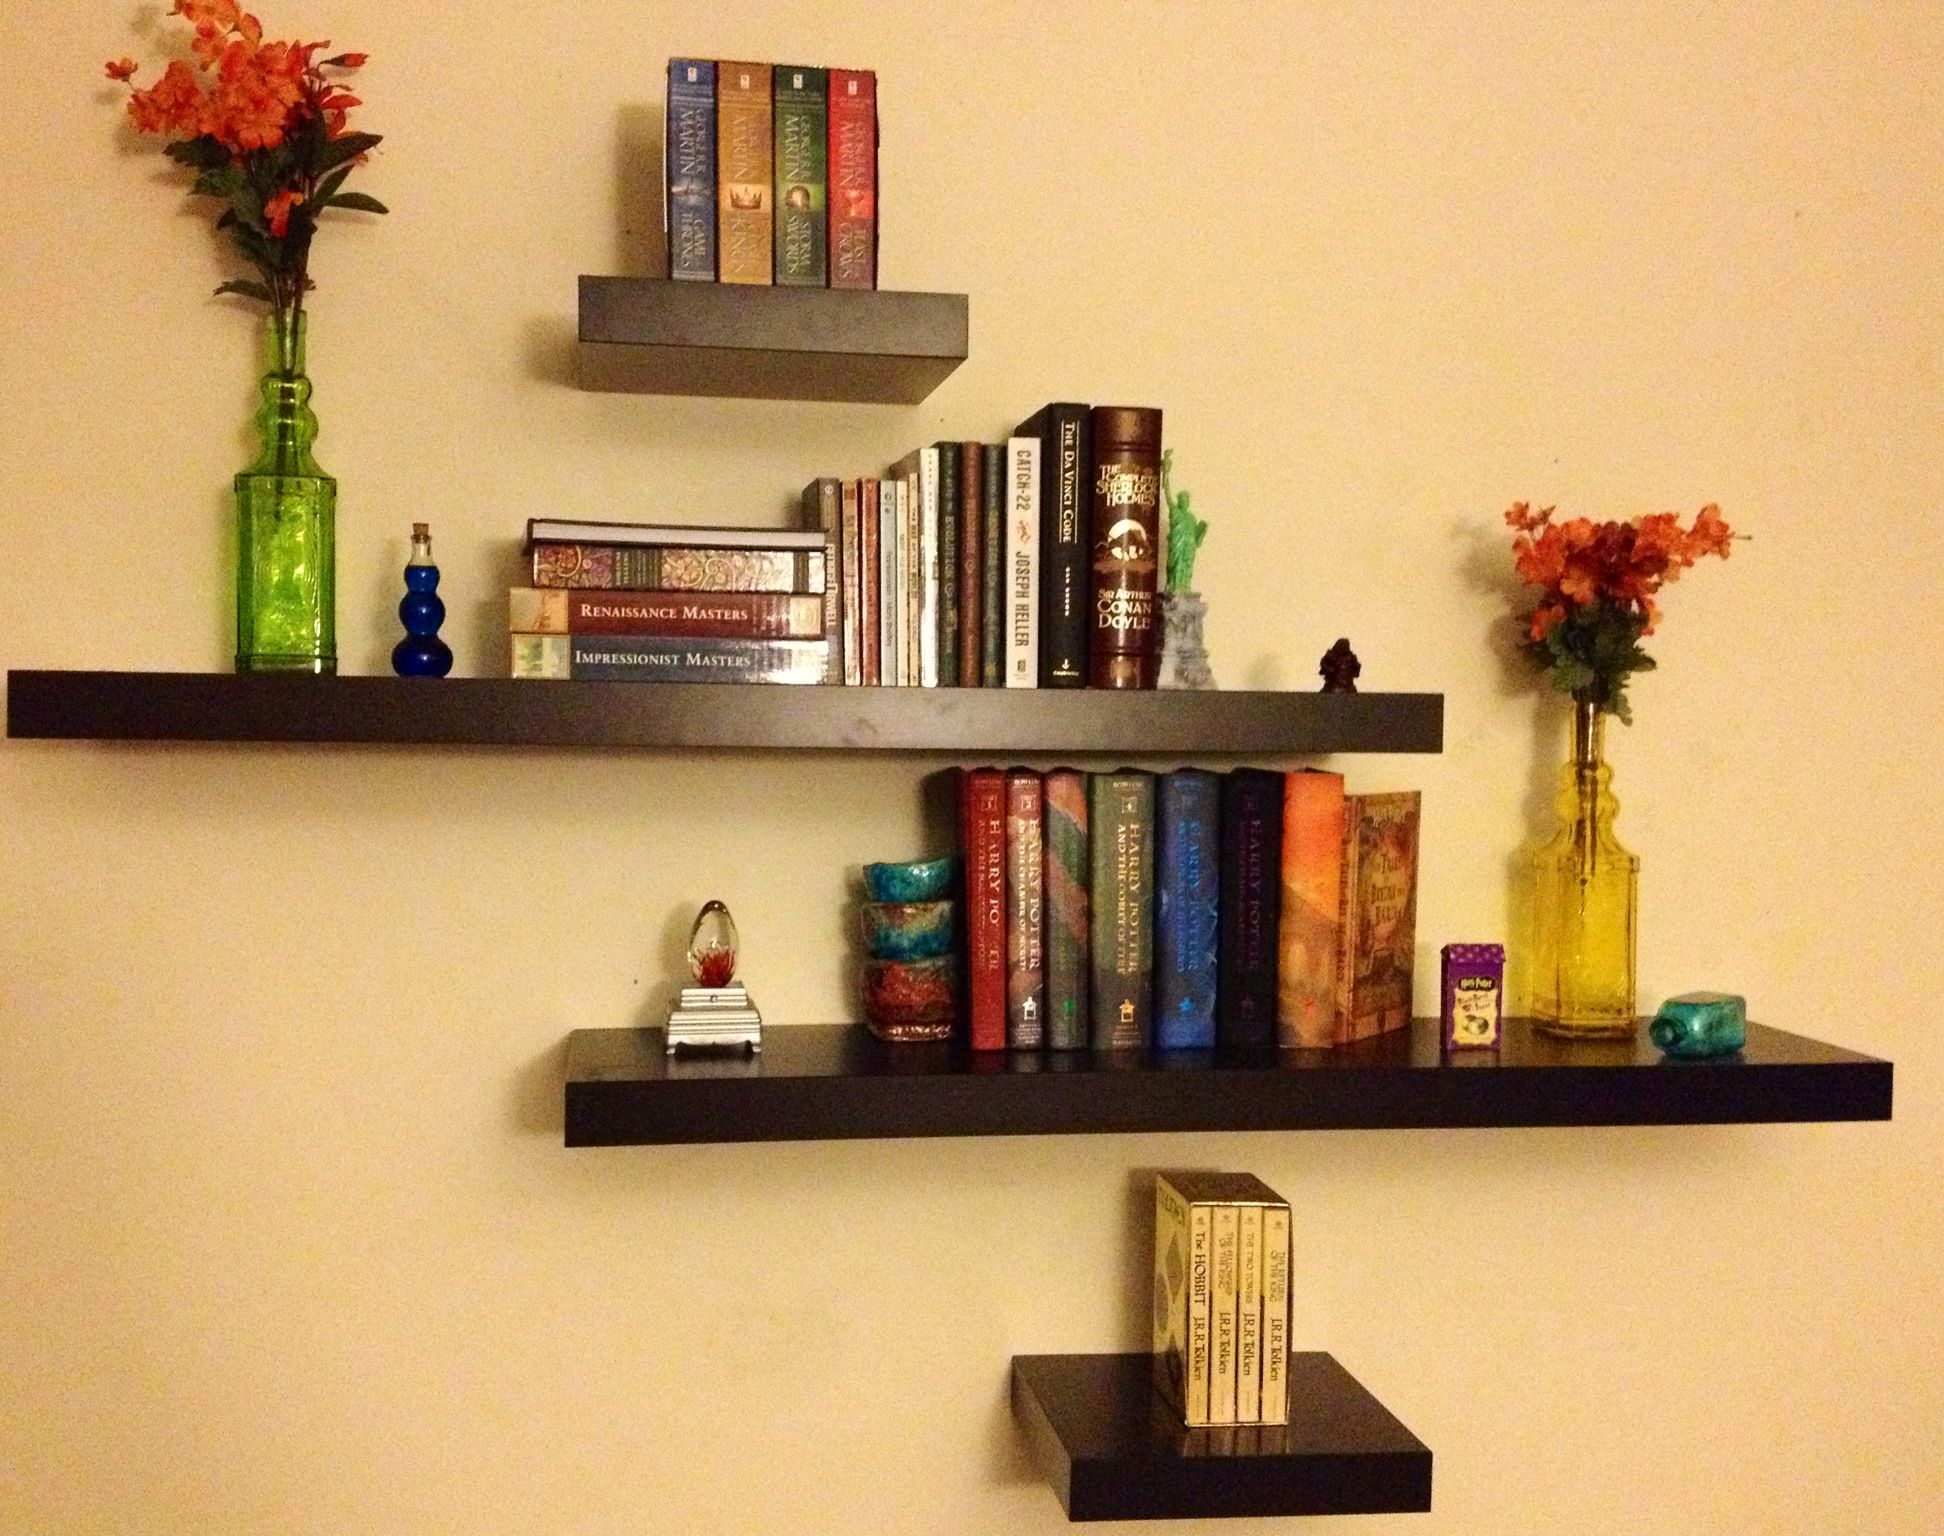 This Is Our Lovely Book Shelves From Ikea! Decorated With Harry